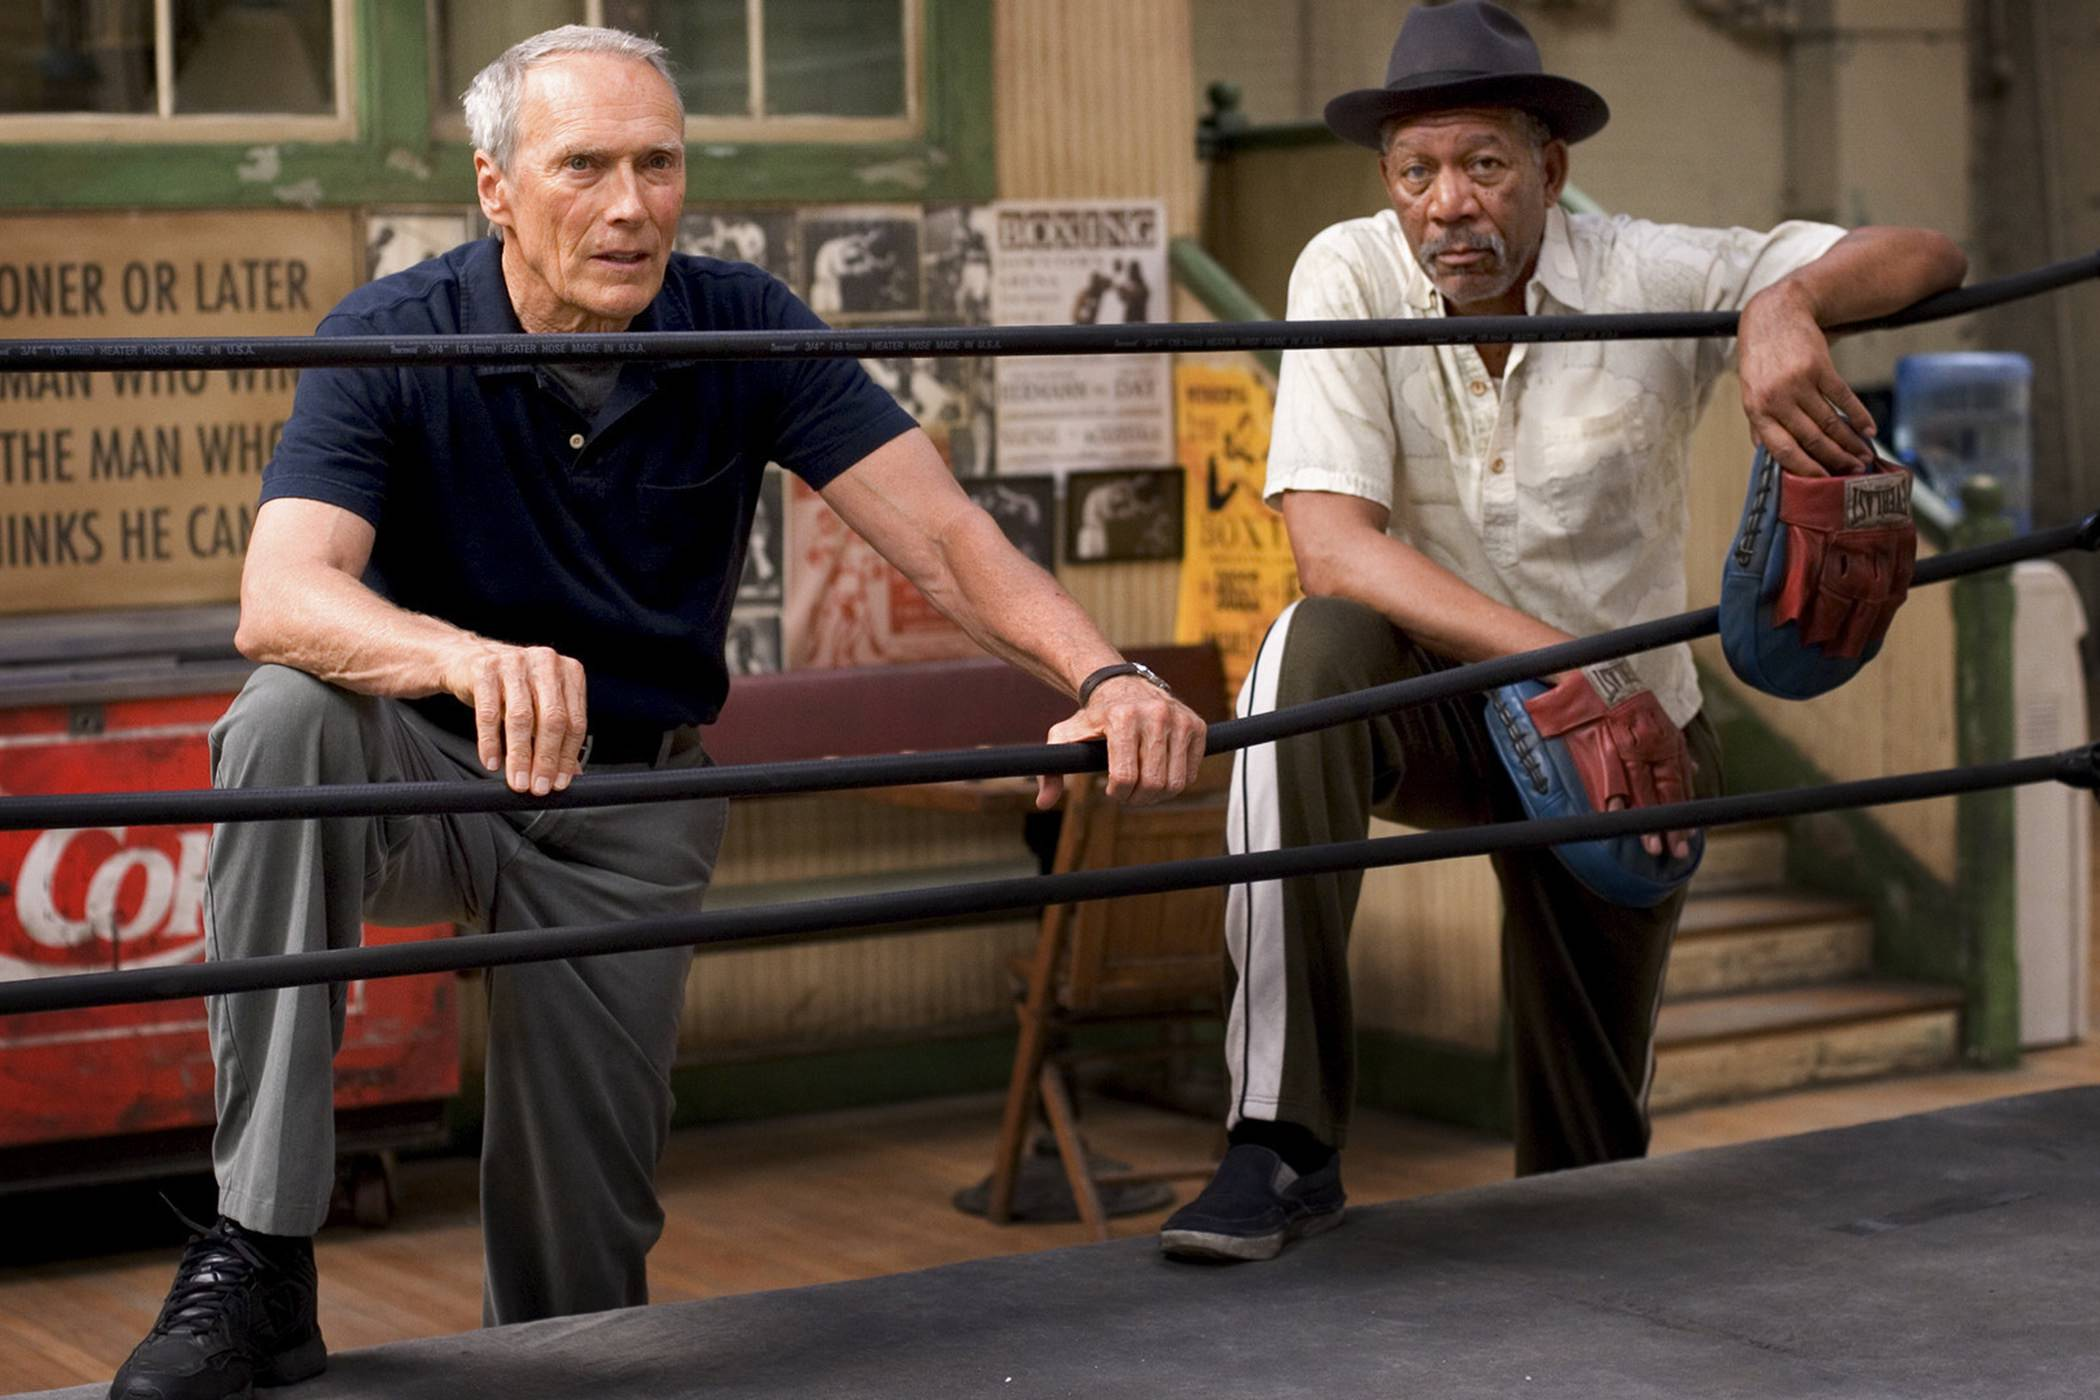 Million dollar baby morgan freeman clint eastwood